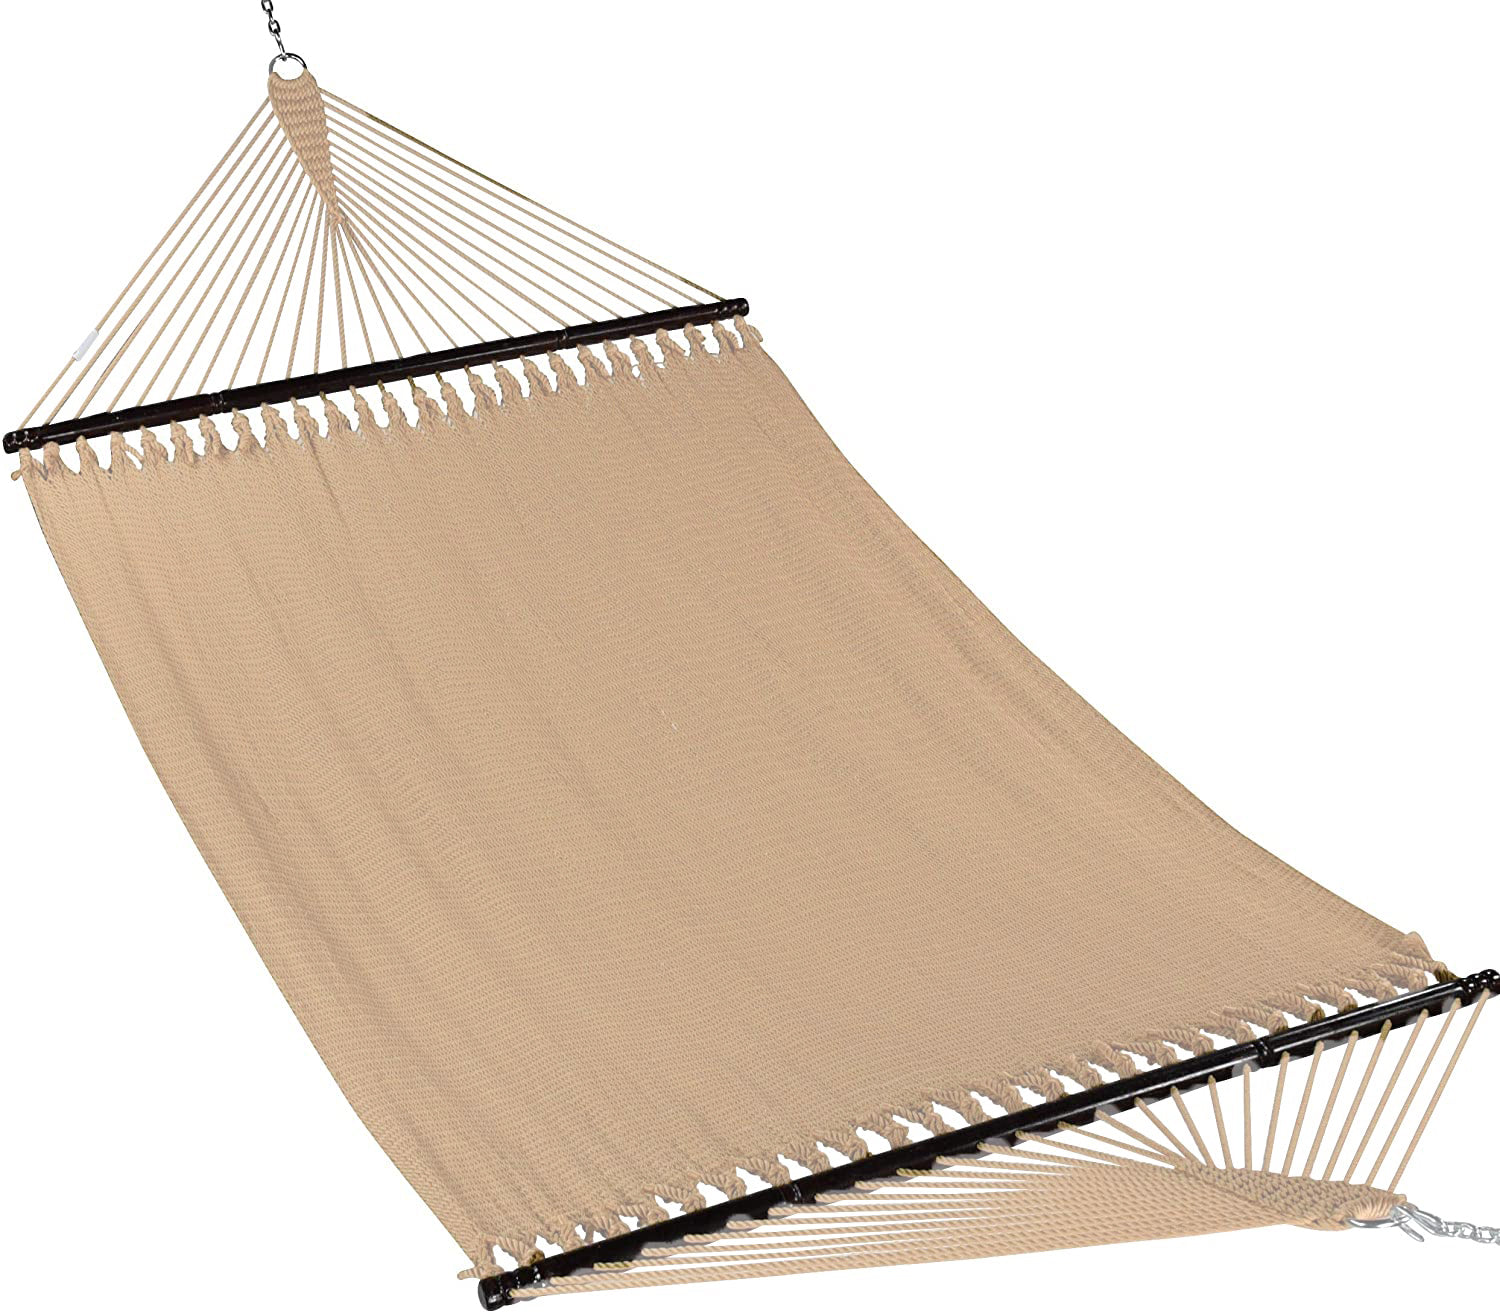 JUNELILY Polyester Rope Hammock, Double Wide Two Person with Spreader Bars - For Outdoor Patio, Yard, Porch